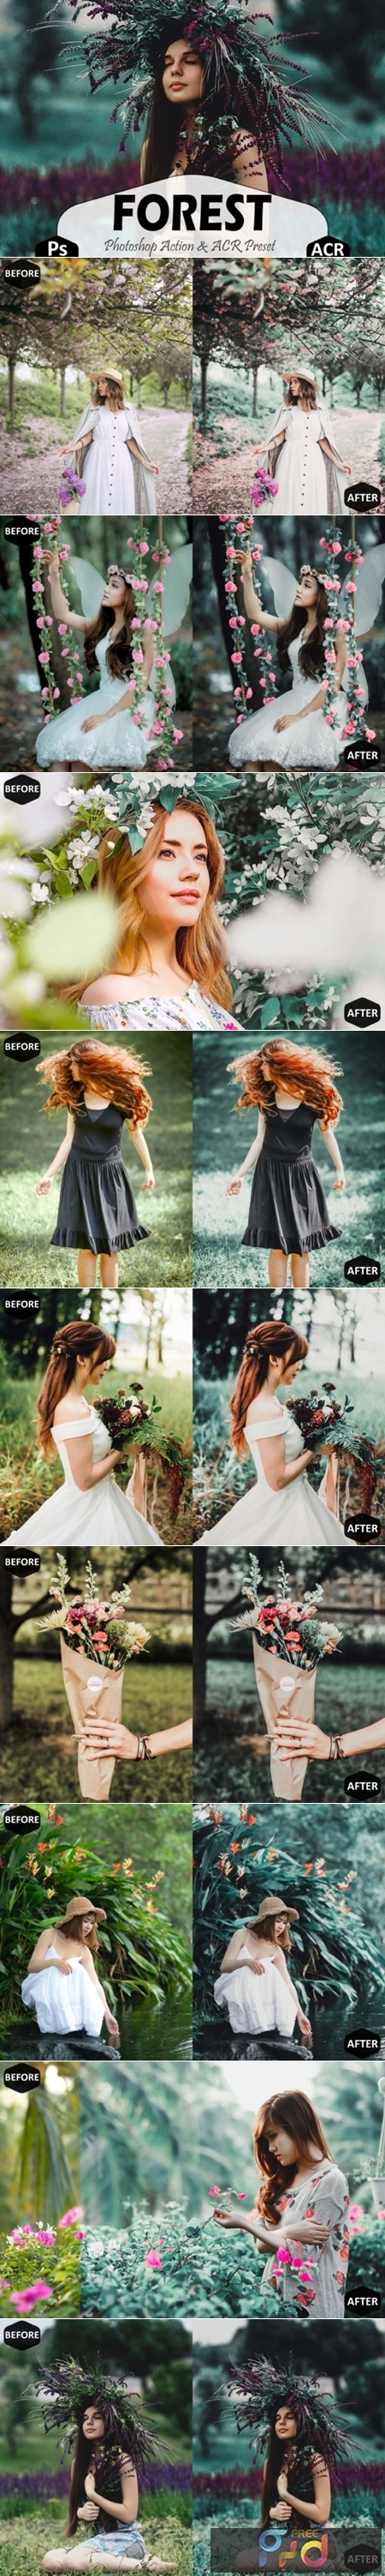 Forest Photoshop Actions and ACR Presets 1629295 1